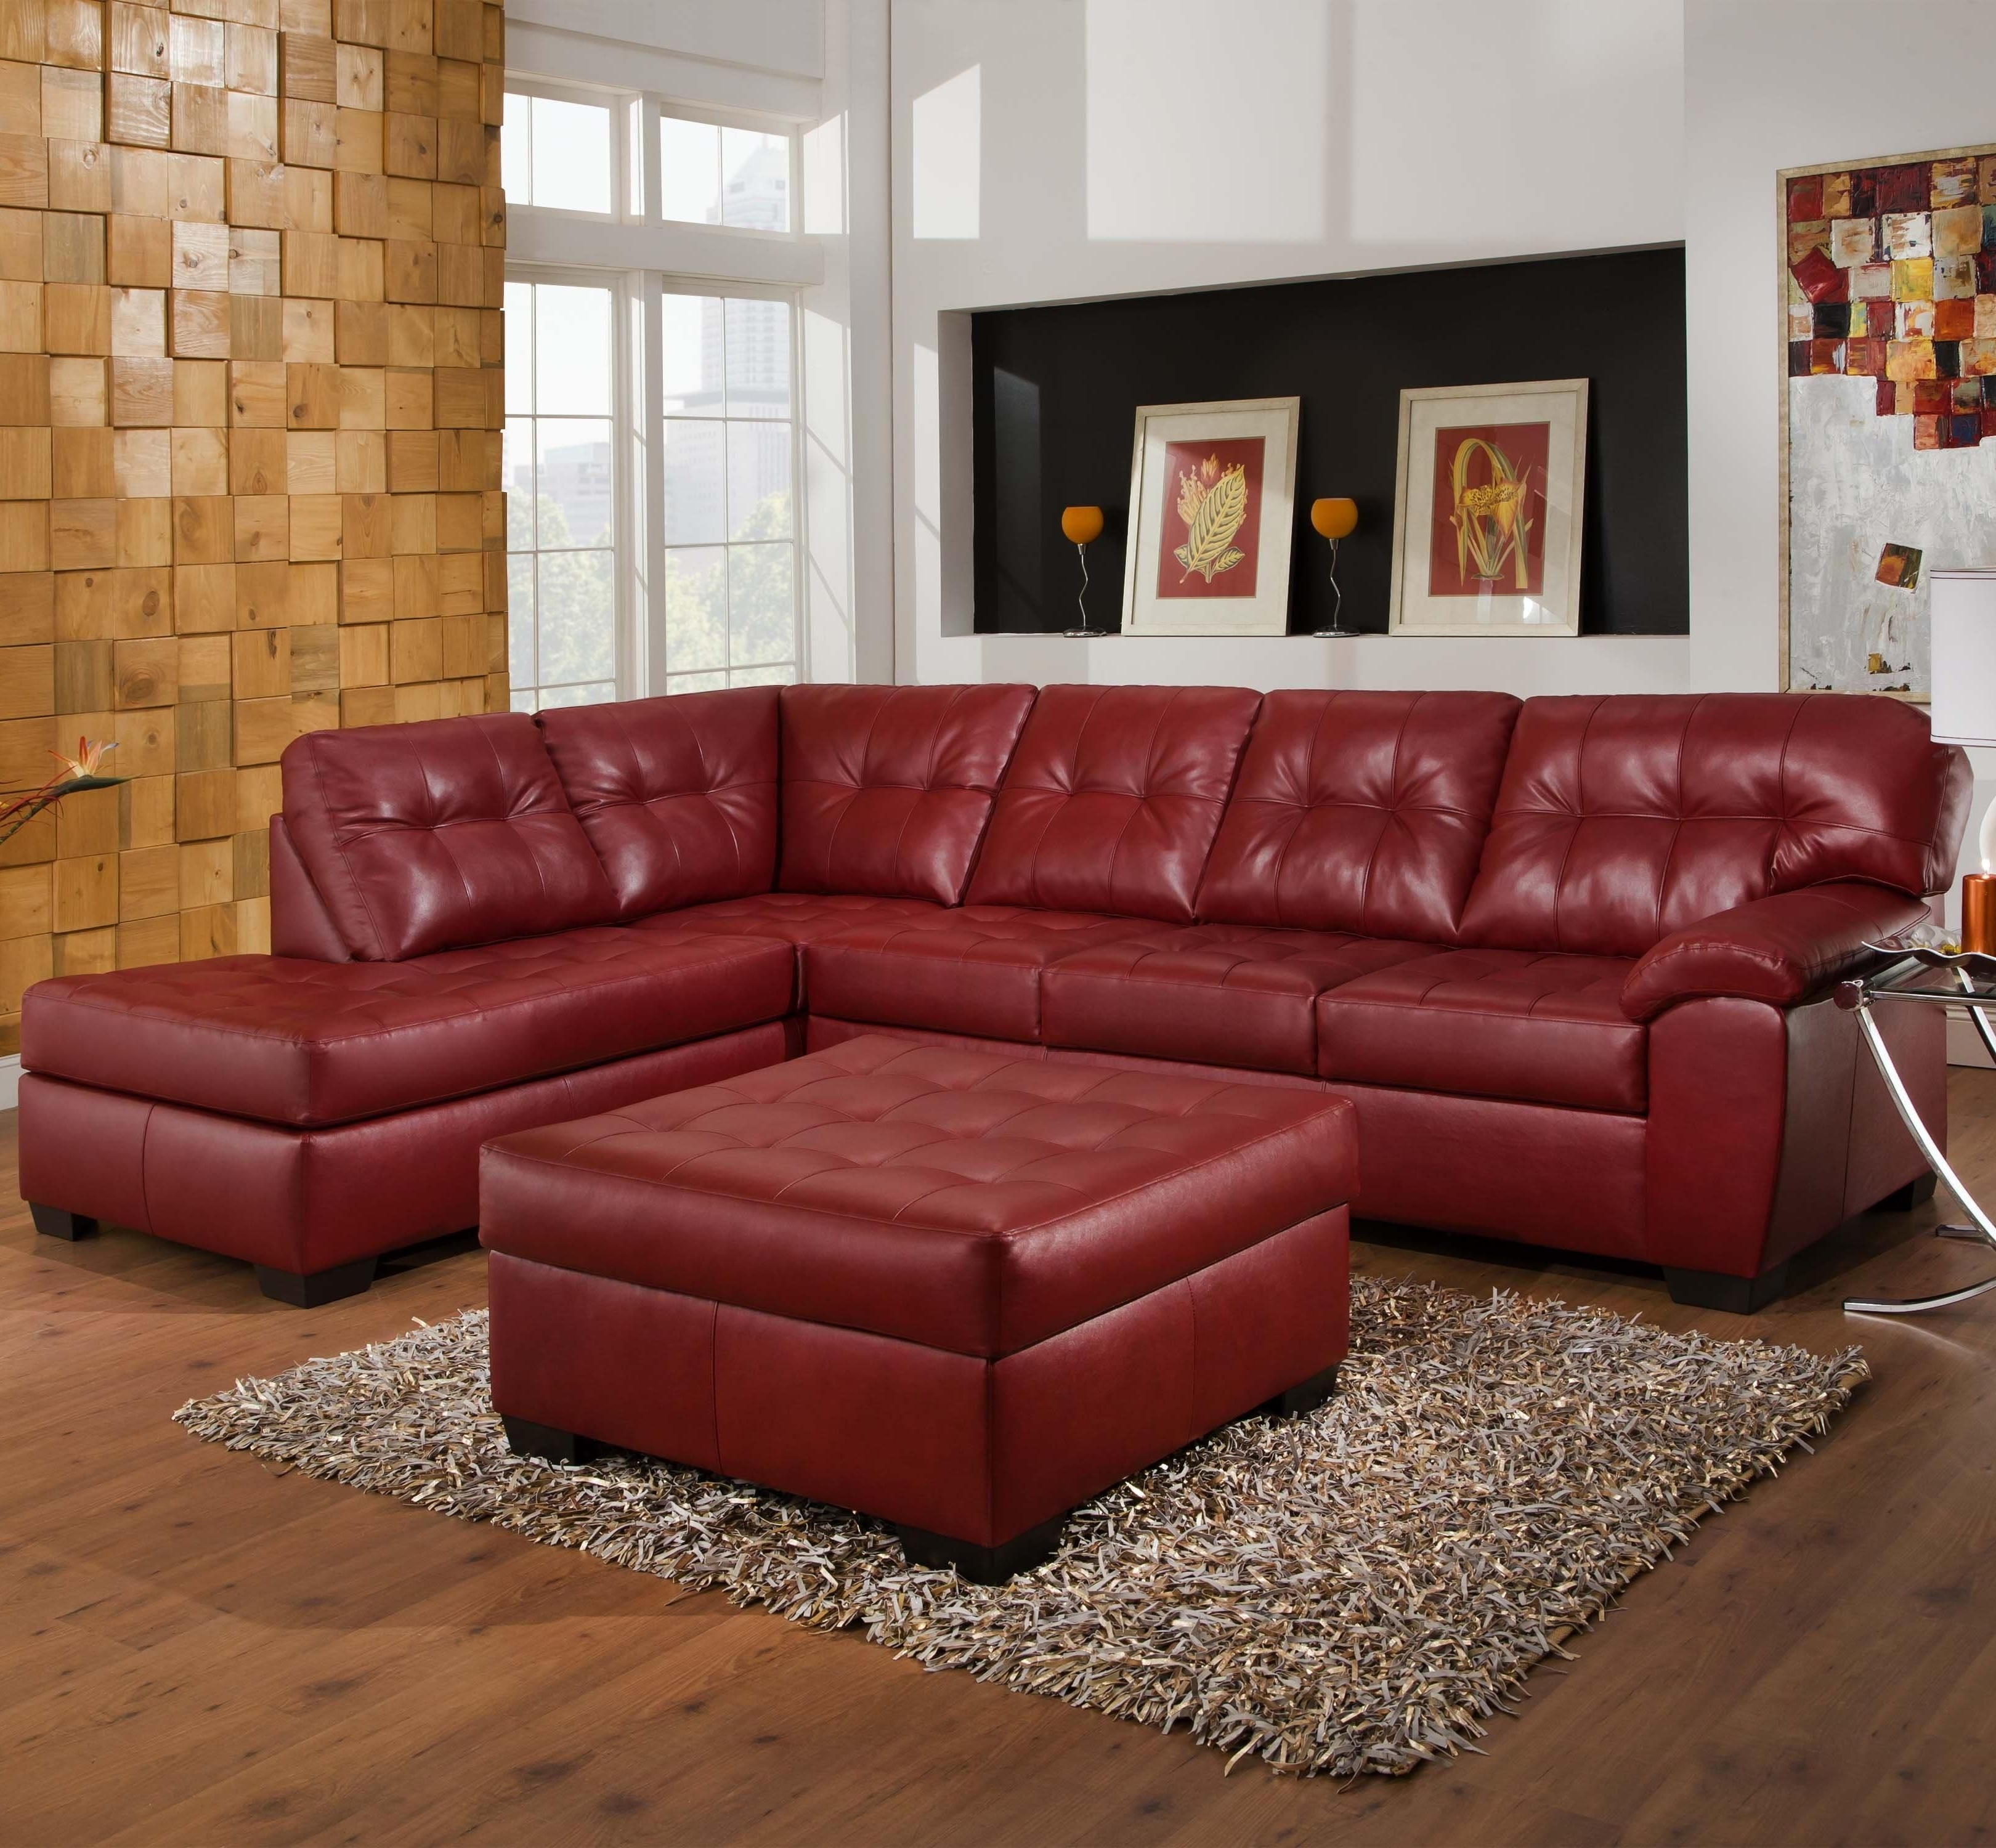 9569 2 Piece Sectional With Tufted Seats & Backsimmons Inside Most Popular Rochester Ny Sectional Sofas (View 5 of 20)